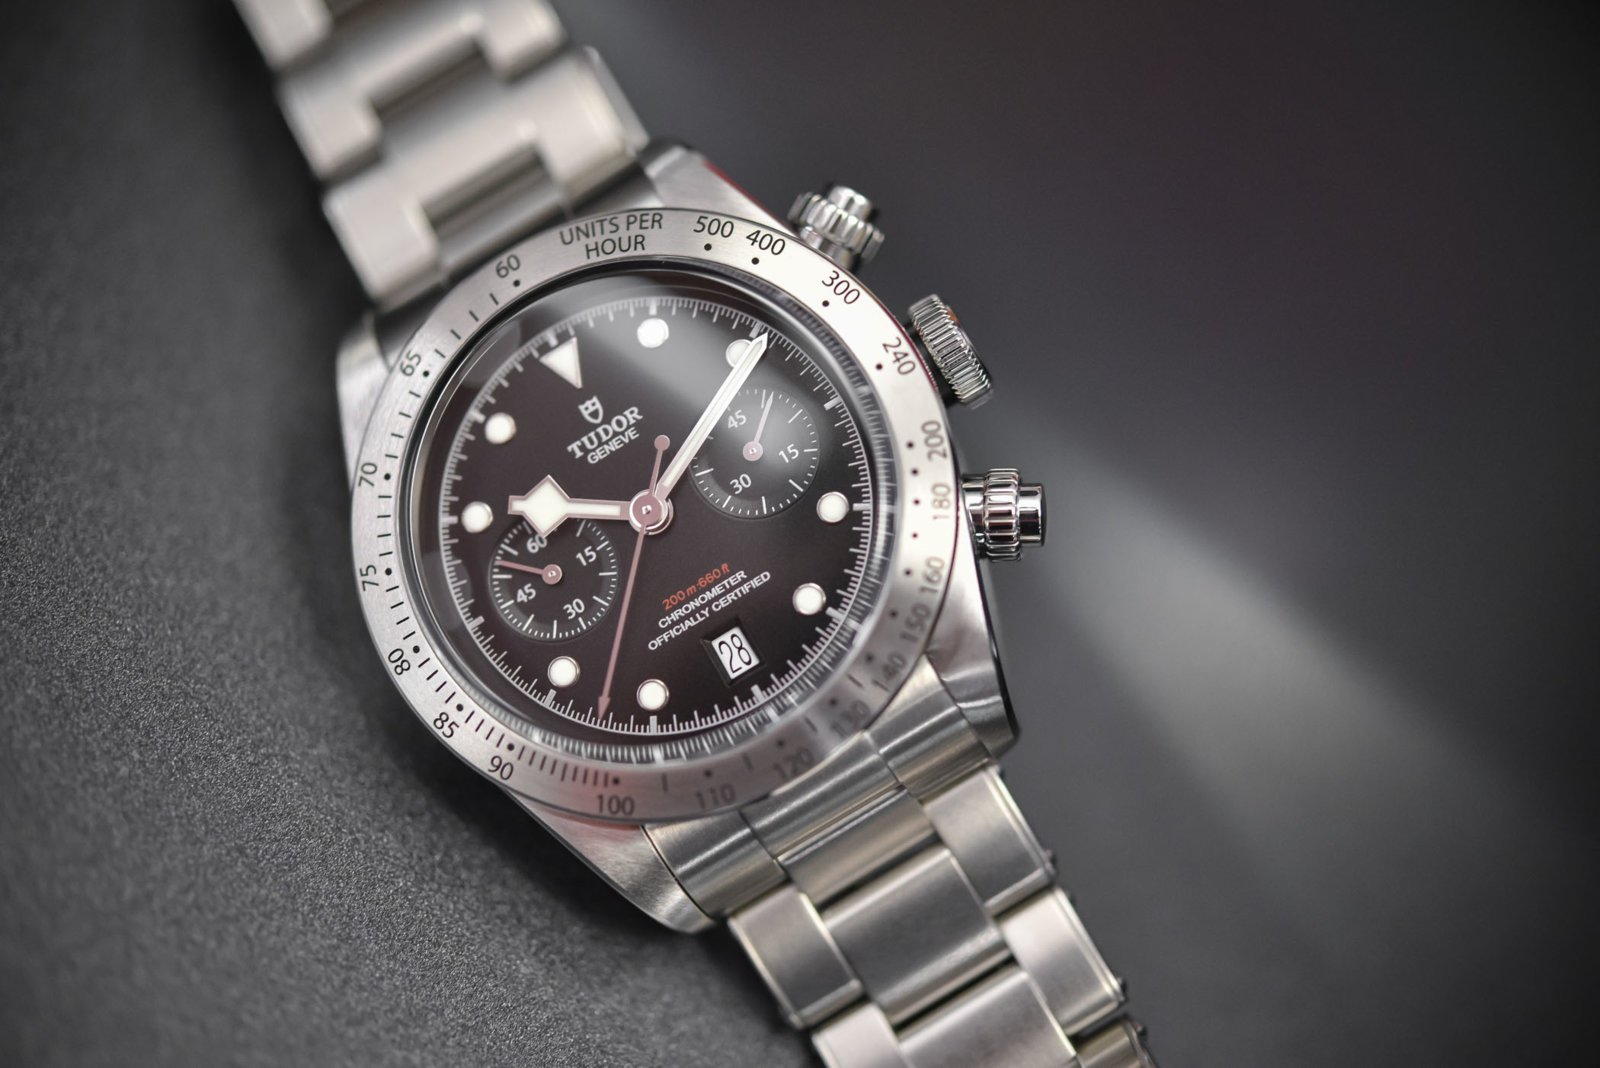 Tudor-Black-Bay-Chrono-M79350-review-16.